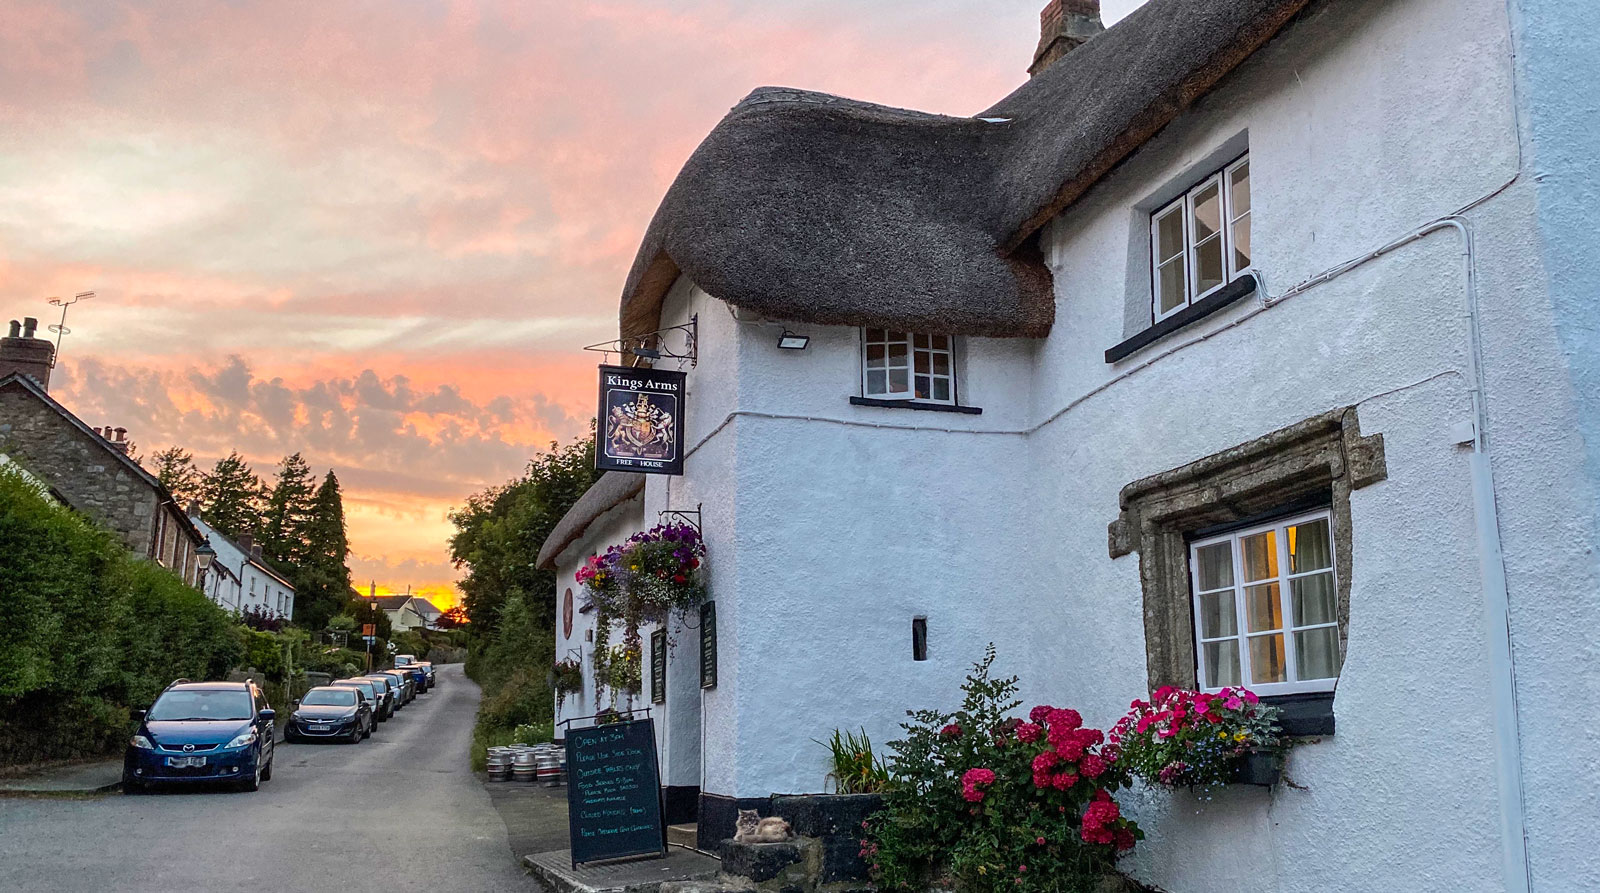 The King's Arms, our lovely friendly local serving good pub food.